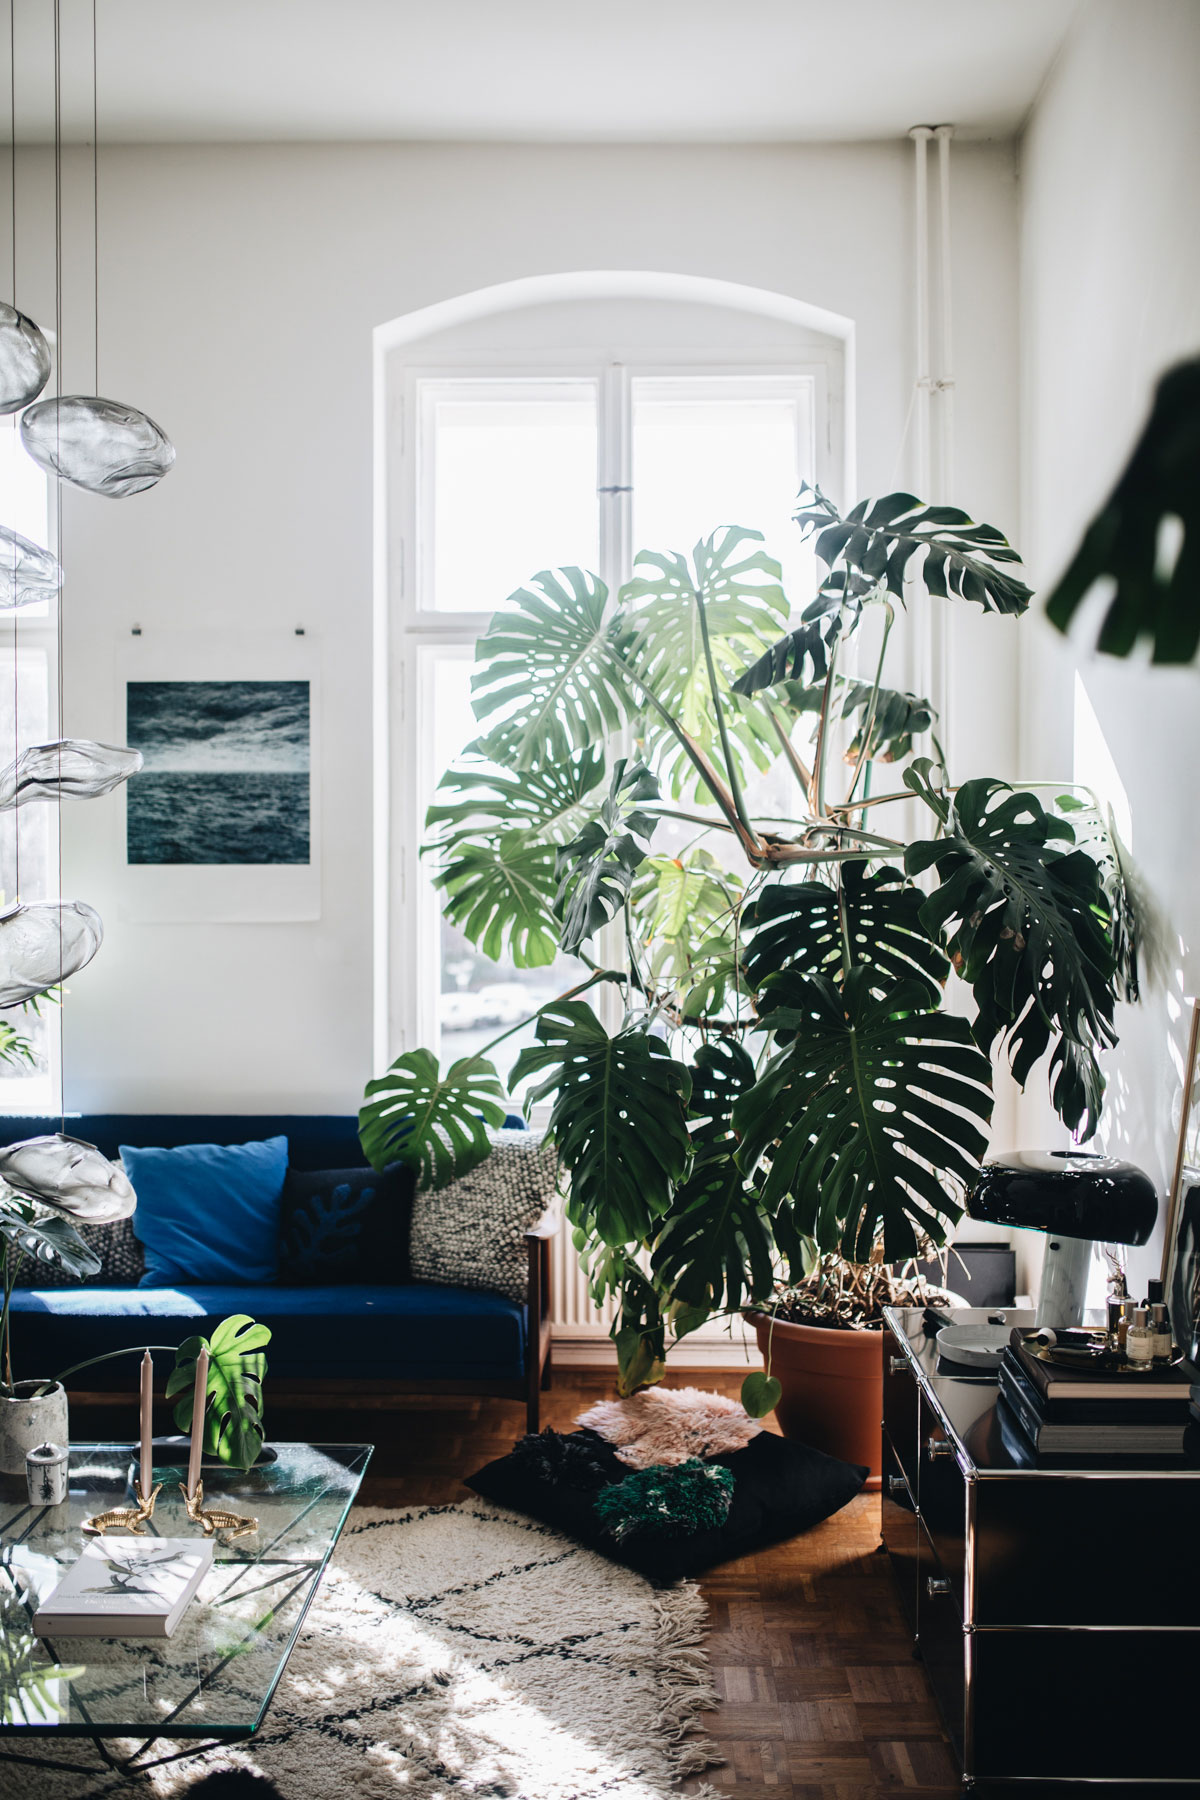 PLANT TRIBE LIVING HAPPILY EVER AFTER WITH PLANTSBy Igor Josifovic & Judith de Graaff Photo: The home of Tim Labenda In Berlin.Photography by Jules Villbrandt for Urban Jungle Bloggers.